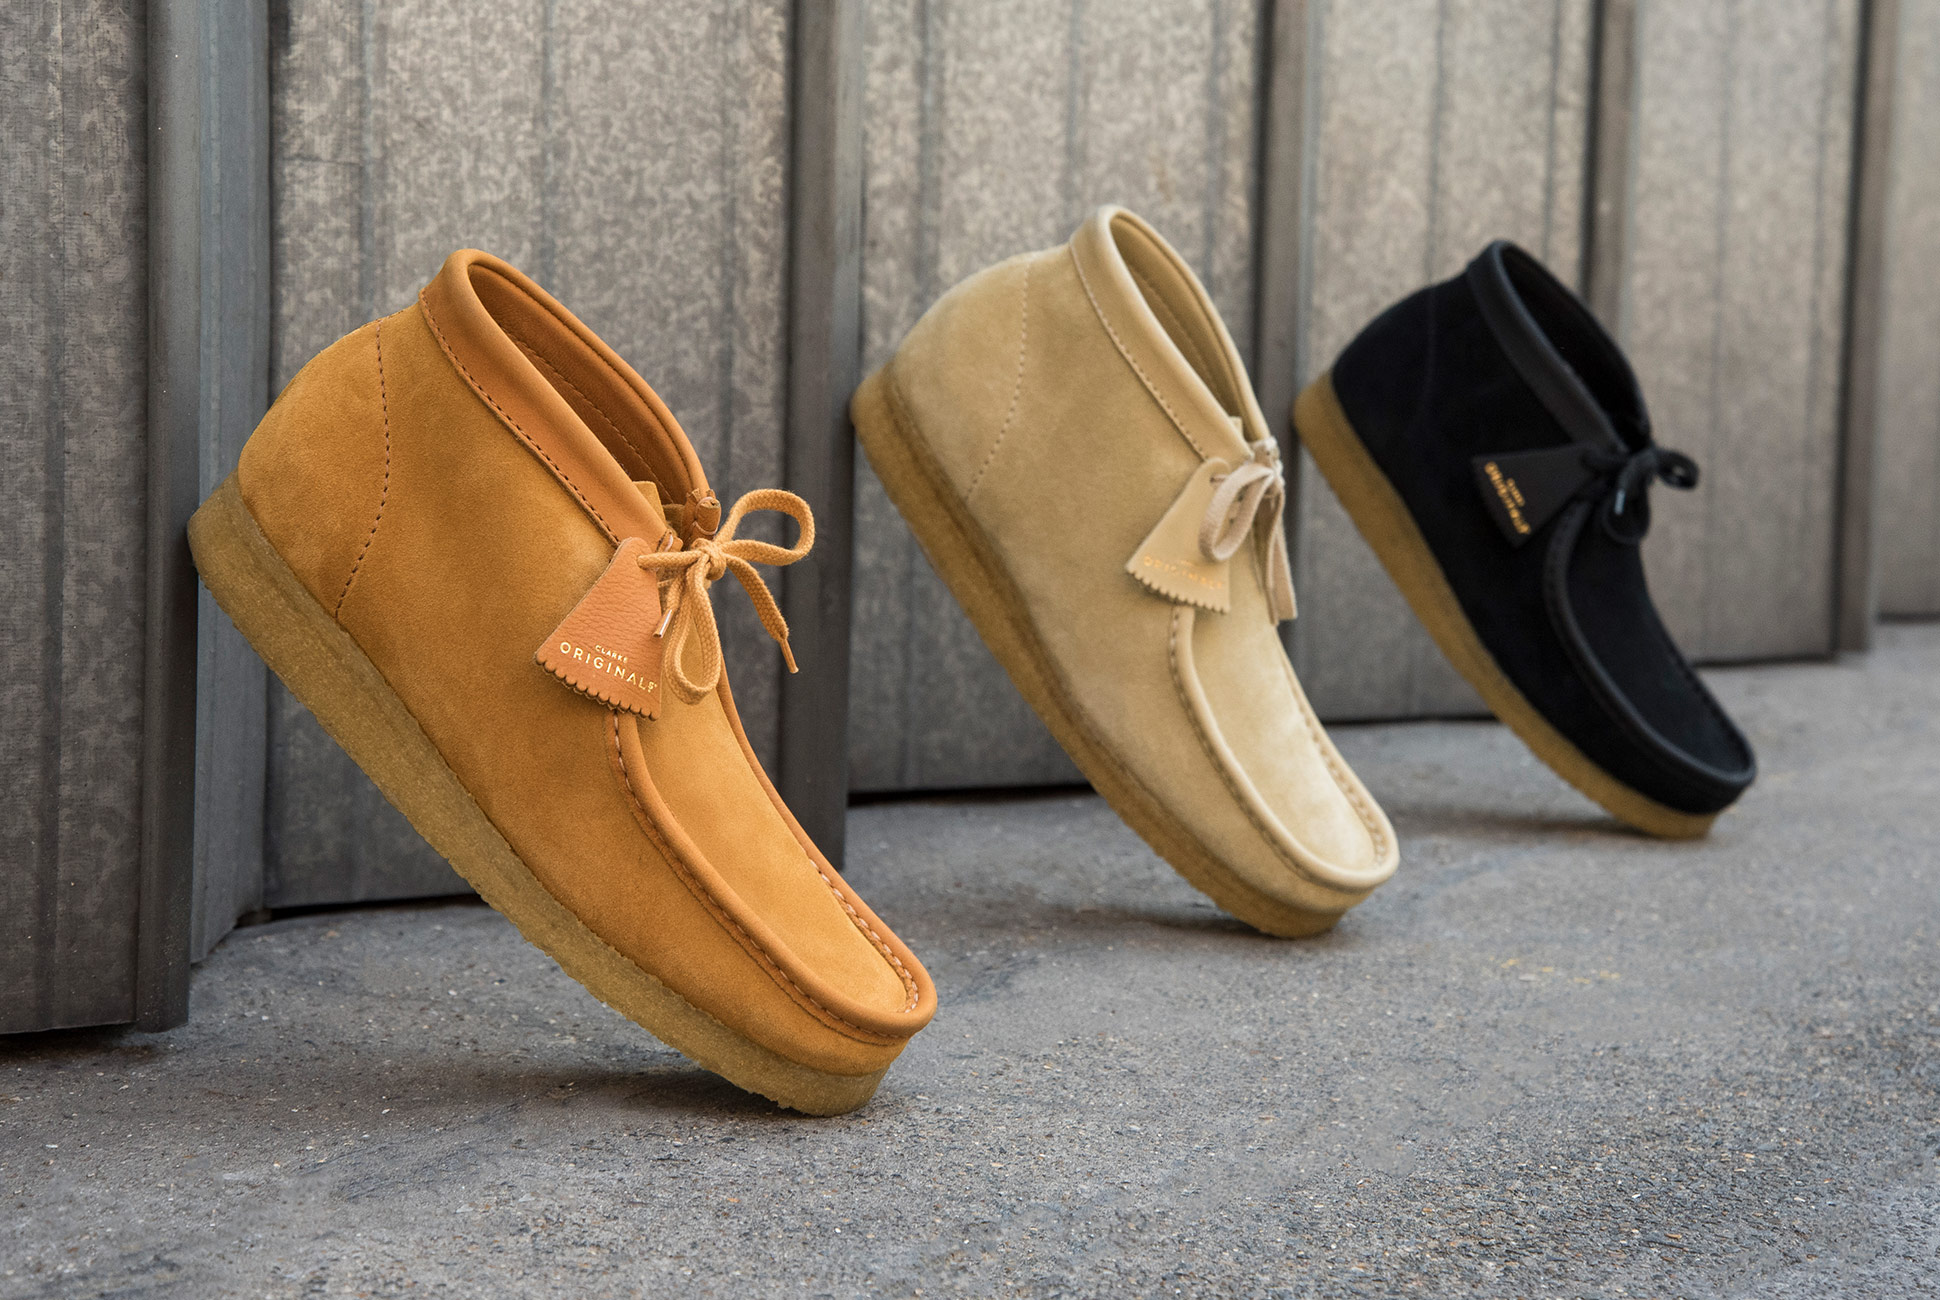 Clarks Wallabee Boot - Janus Butt